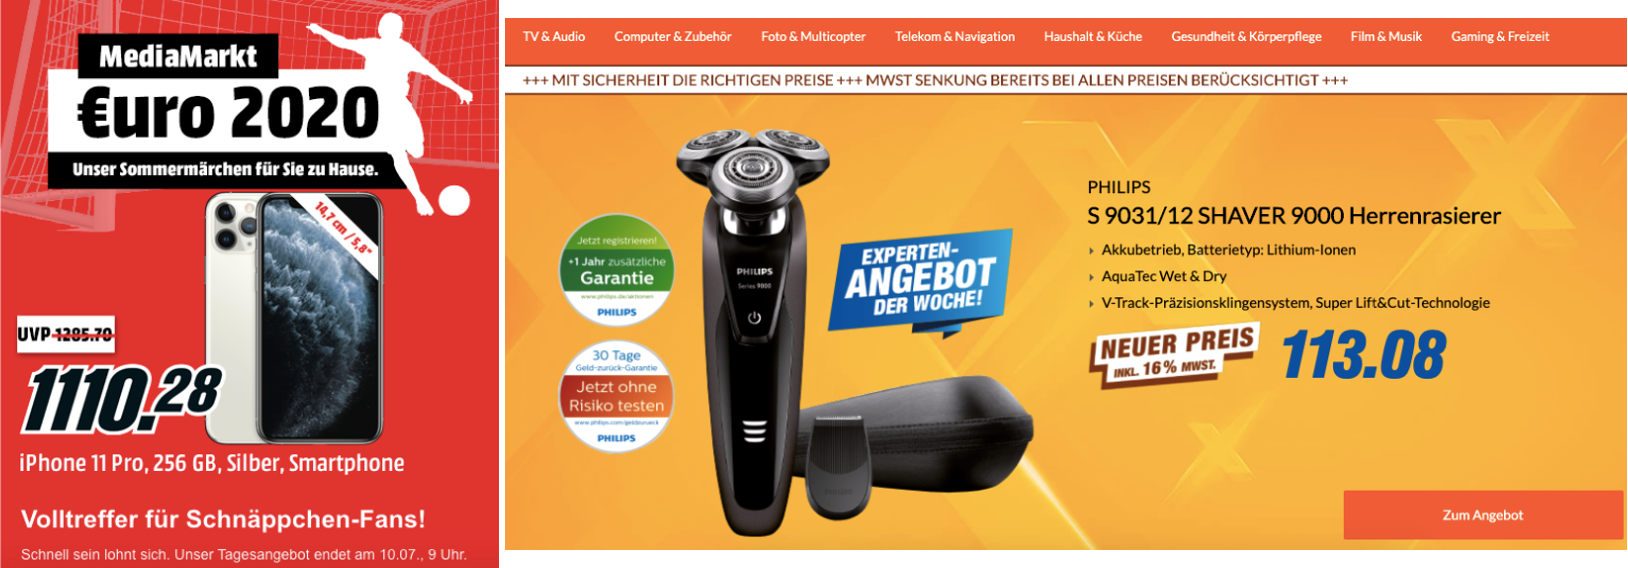 Targeted Ads Germany